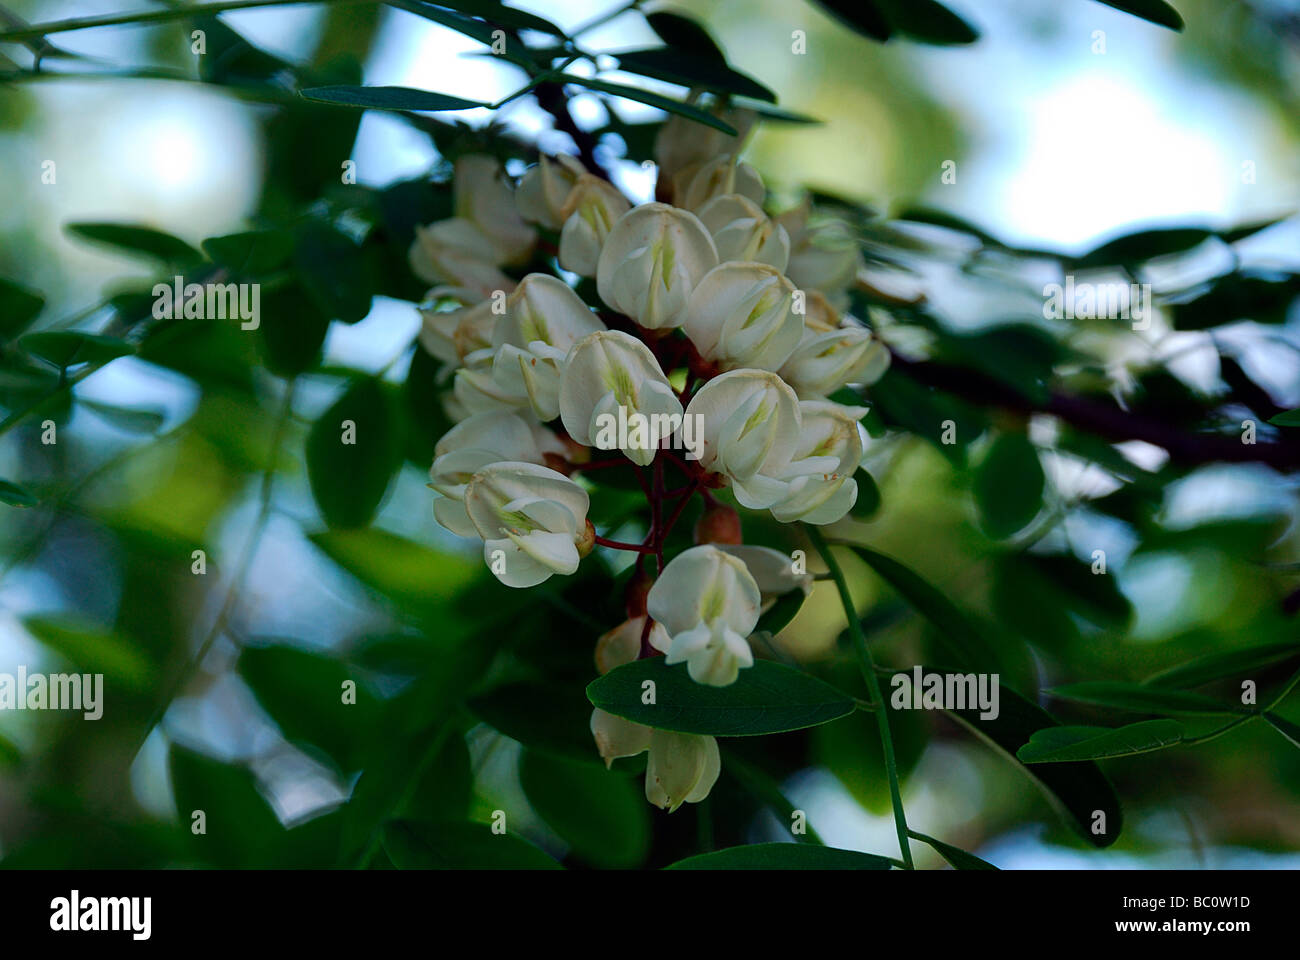 Close Up Of The Fragrant White Flowers Of The Black Locust Tree